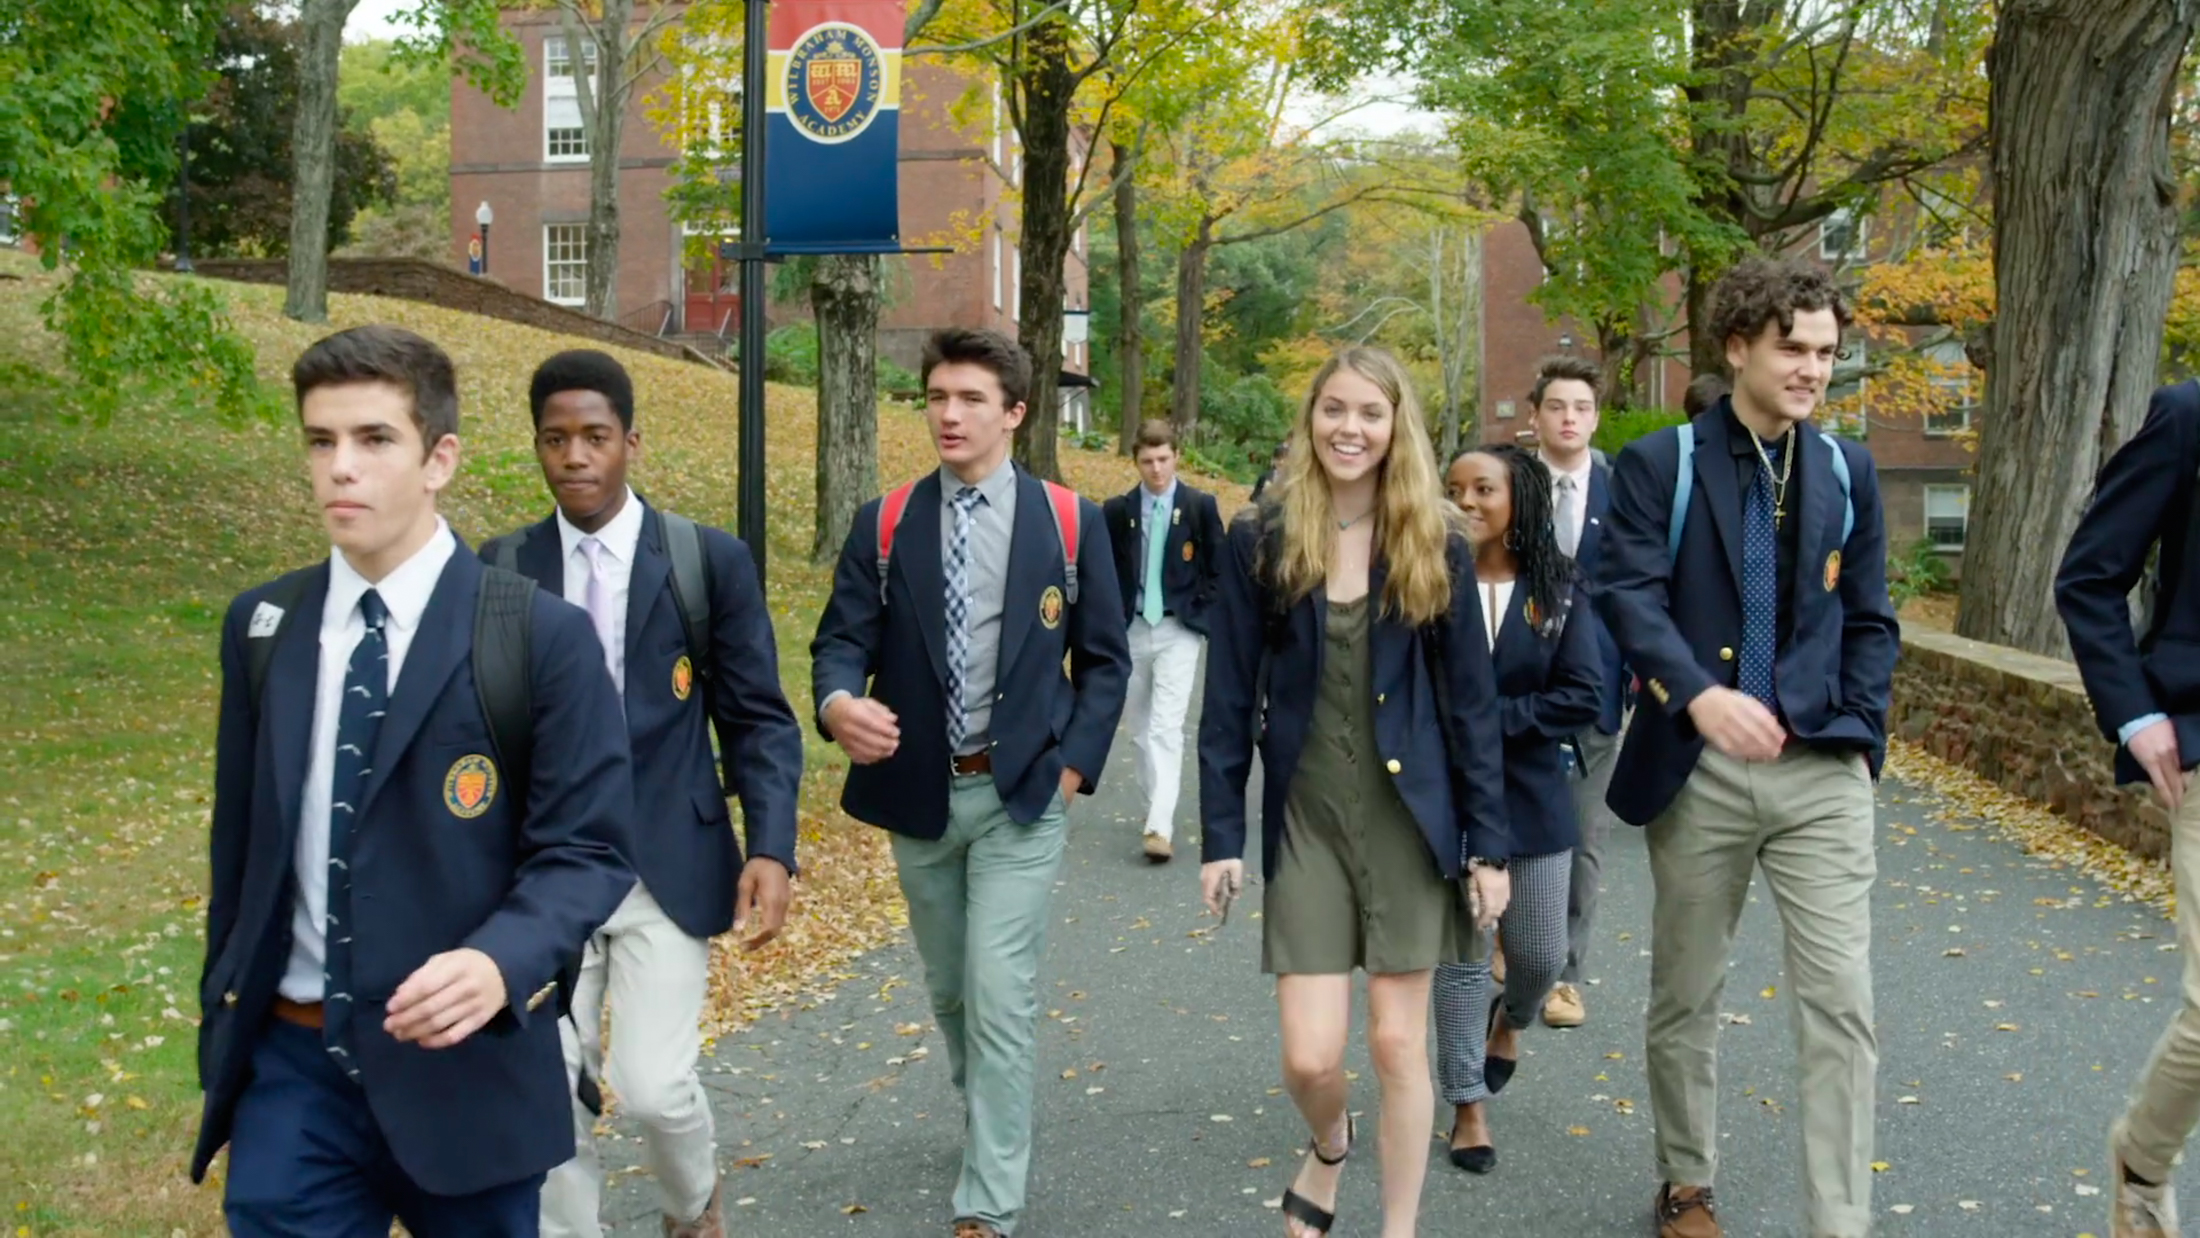 <em><strong>Wilbraham & Monson Academy</strong><p>Find out more »</p></em>|education